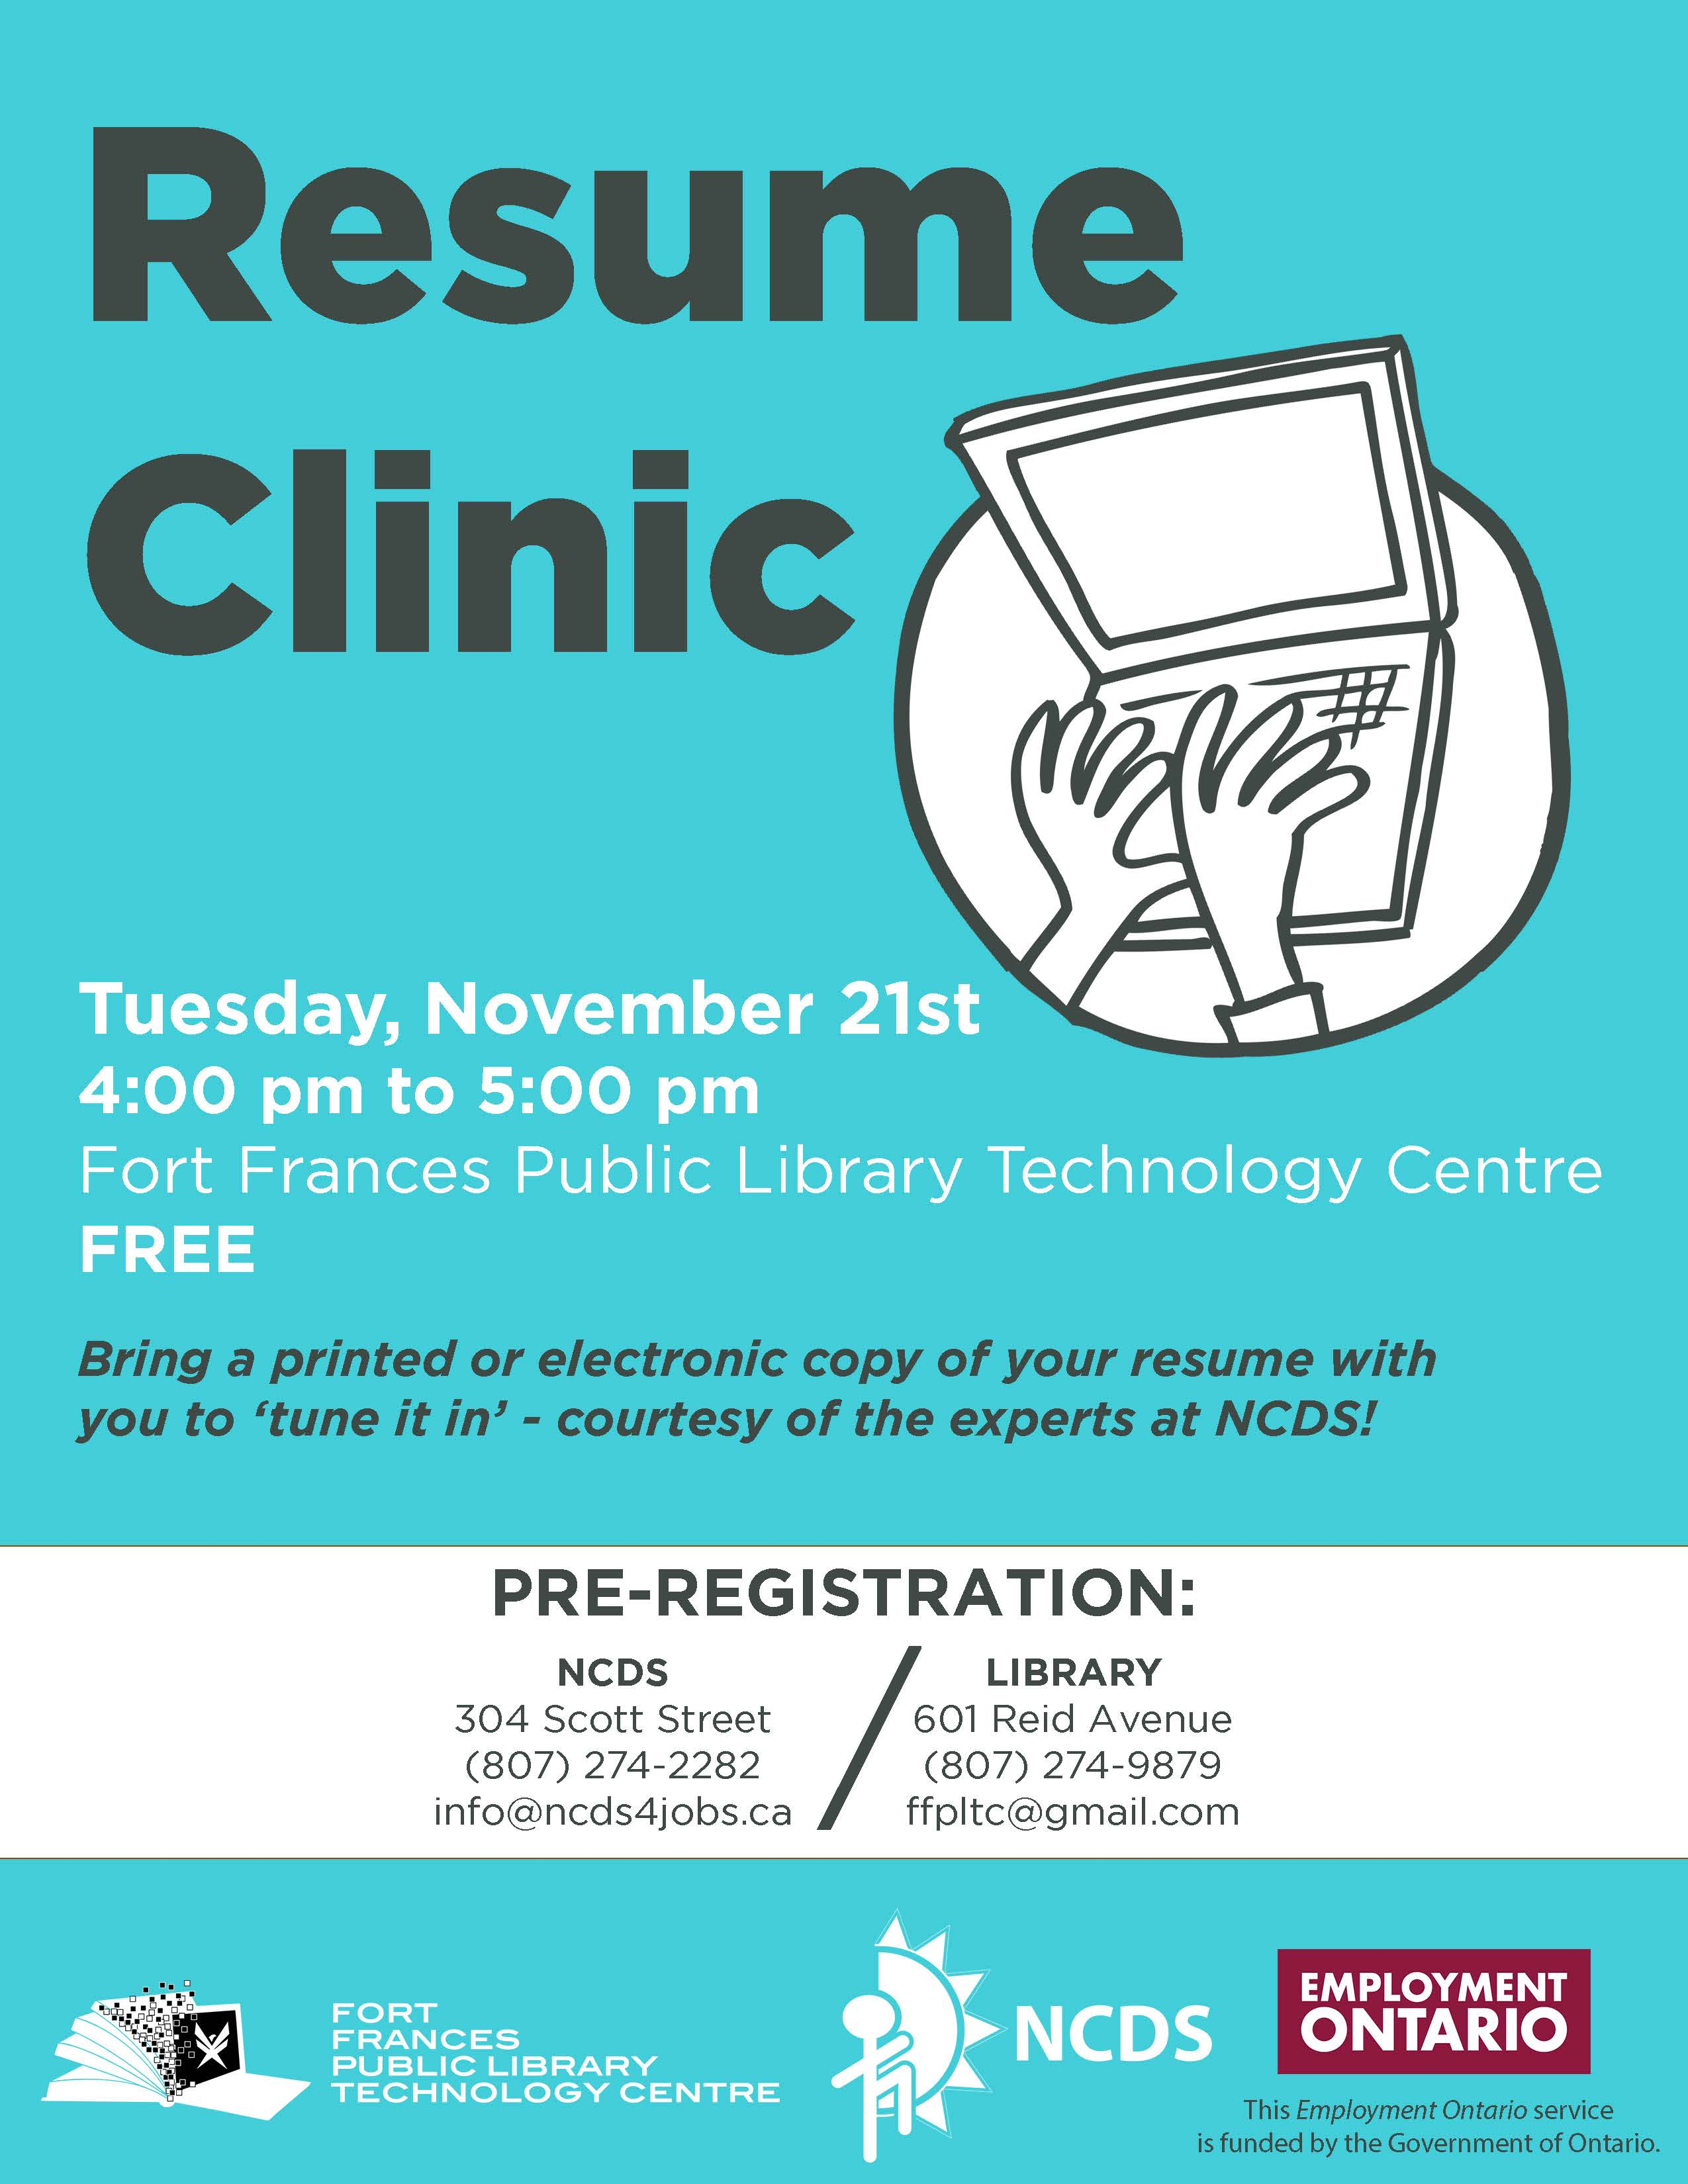 Fort Frances Public Library Technology Centre  The Resume Clinic